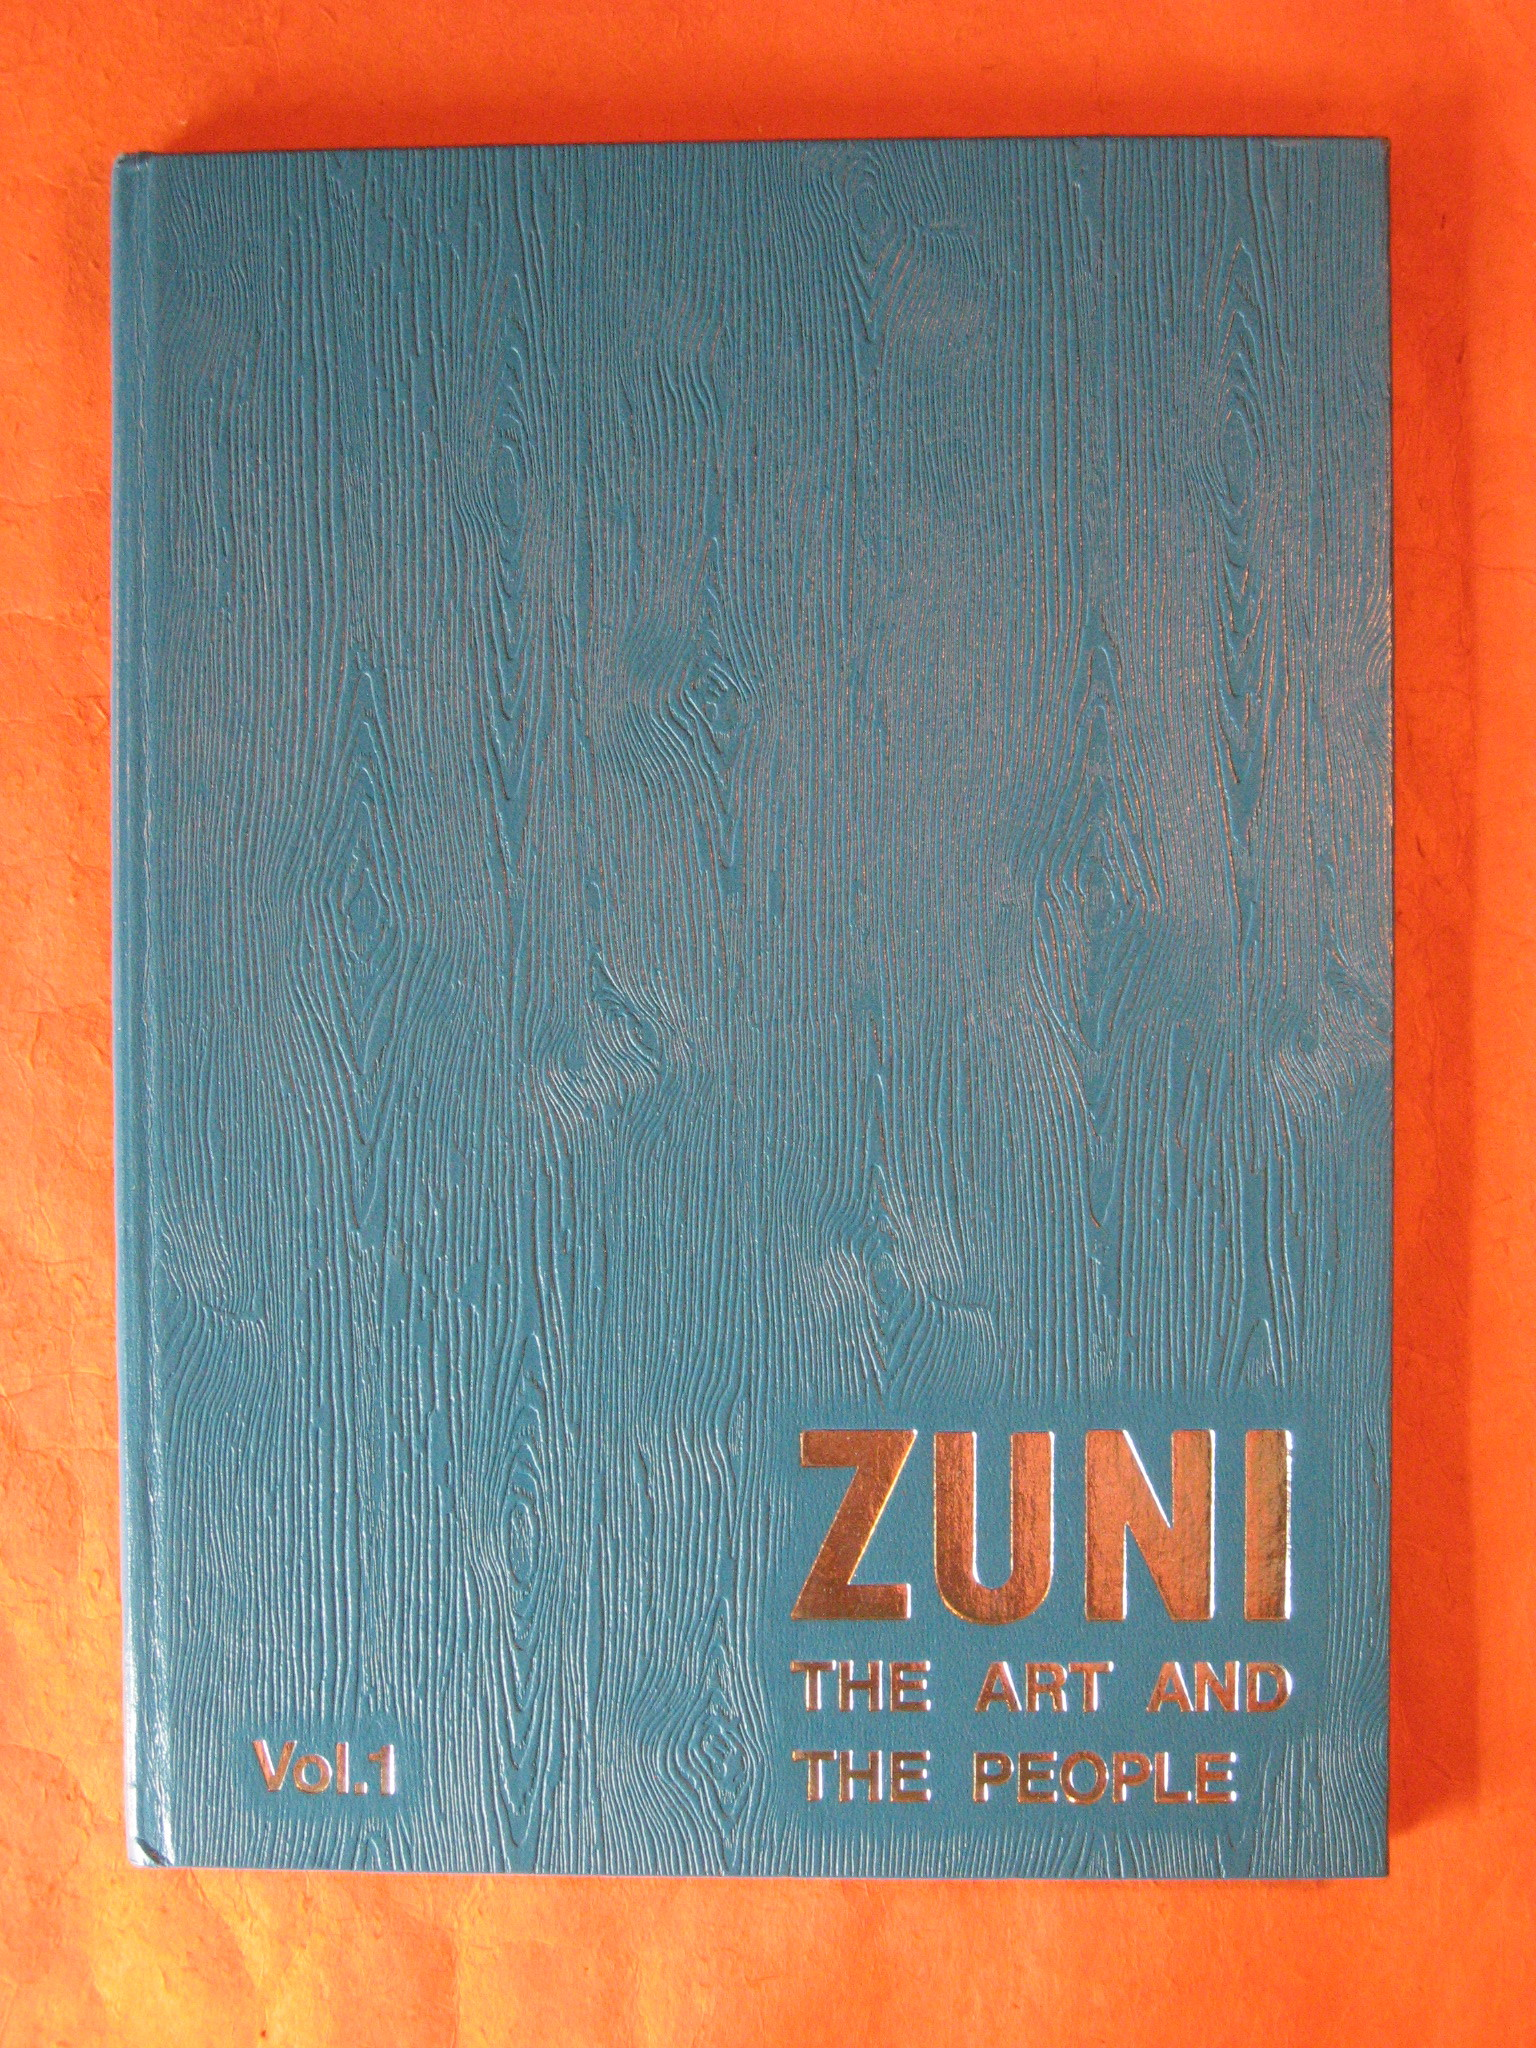 Zuni:  The Art and The People  Volume 1, Bell, Barbara and Ed